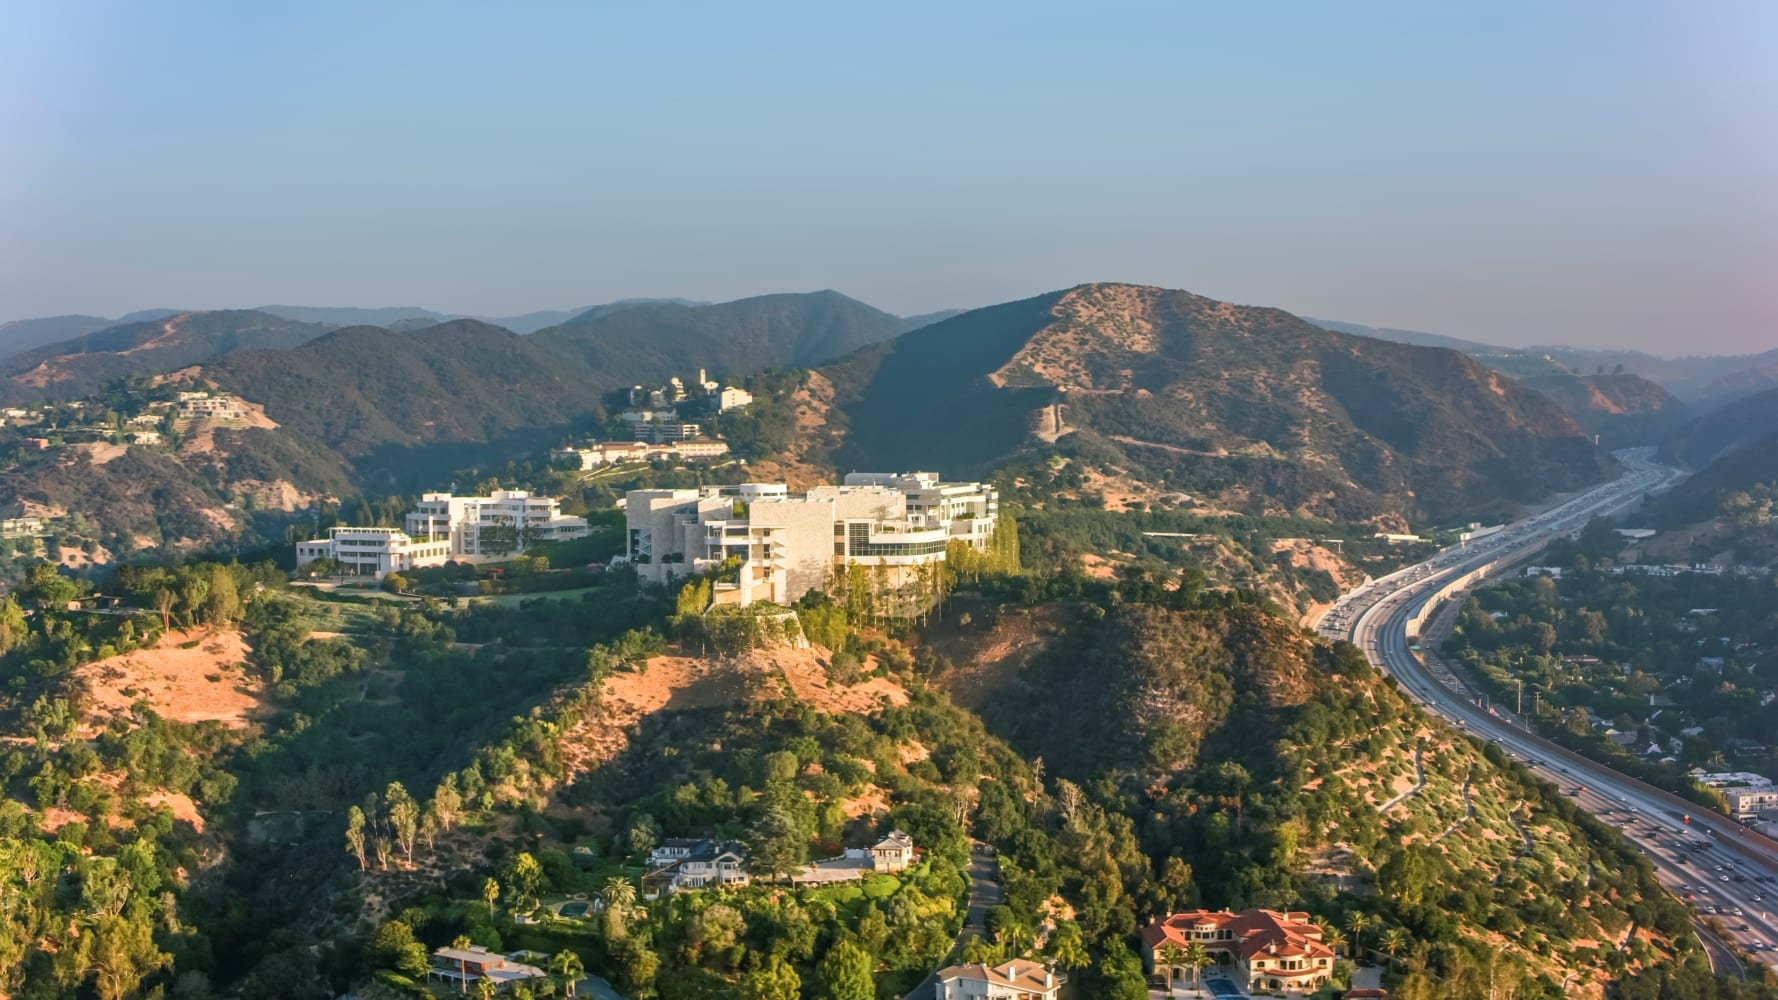 The Getty Center in Brentwood, Los Angeles, CA